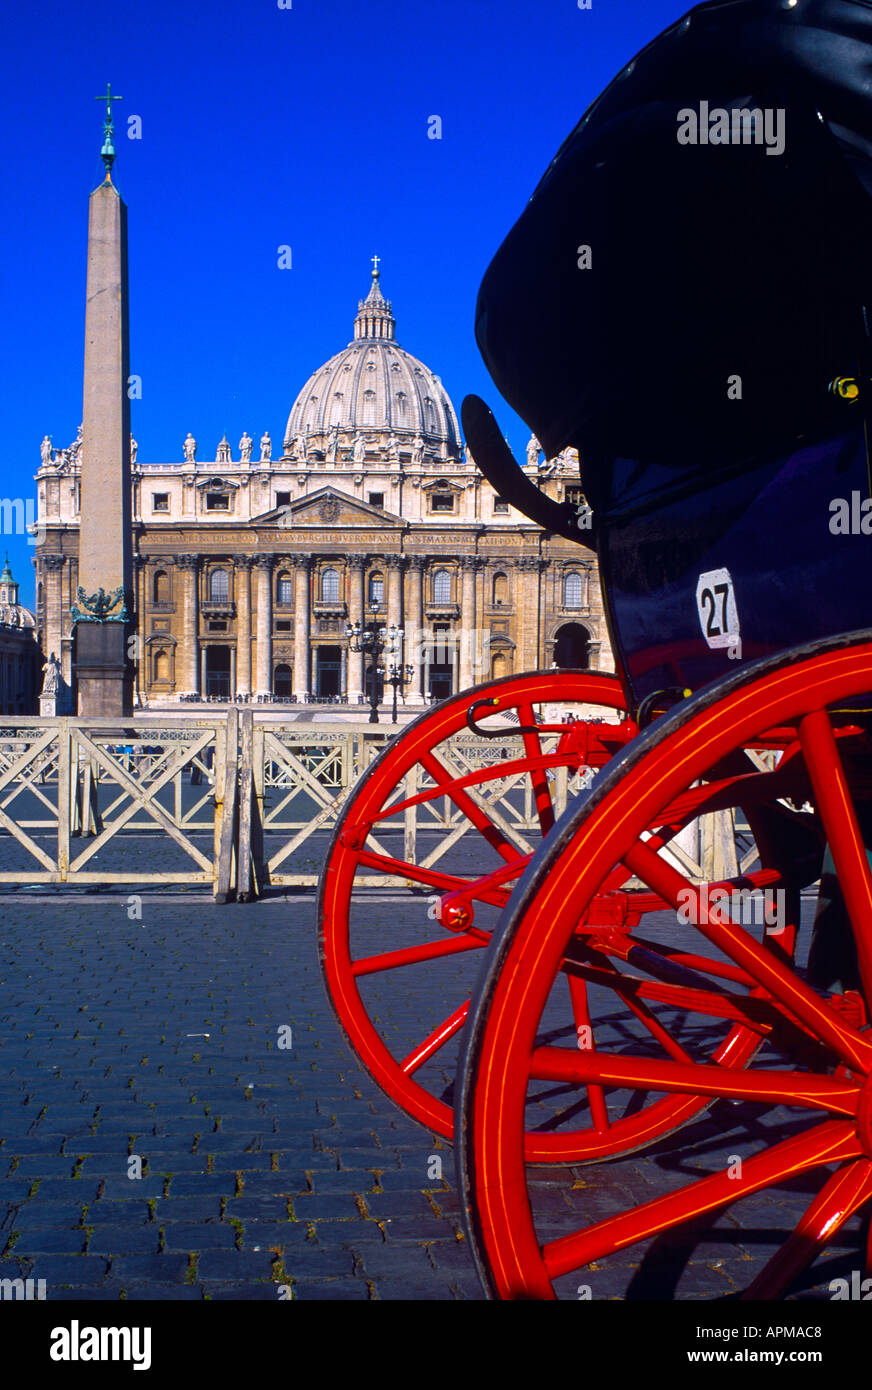 ST PETER S BASILICA ROME ITALY - Stock Image